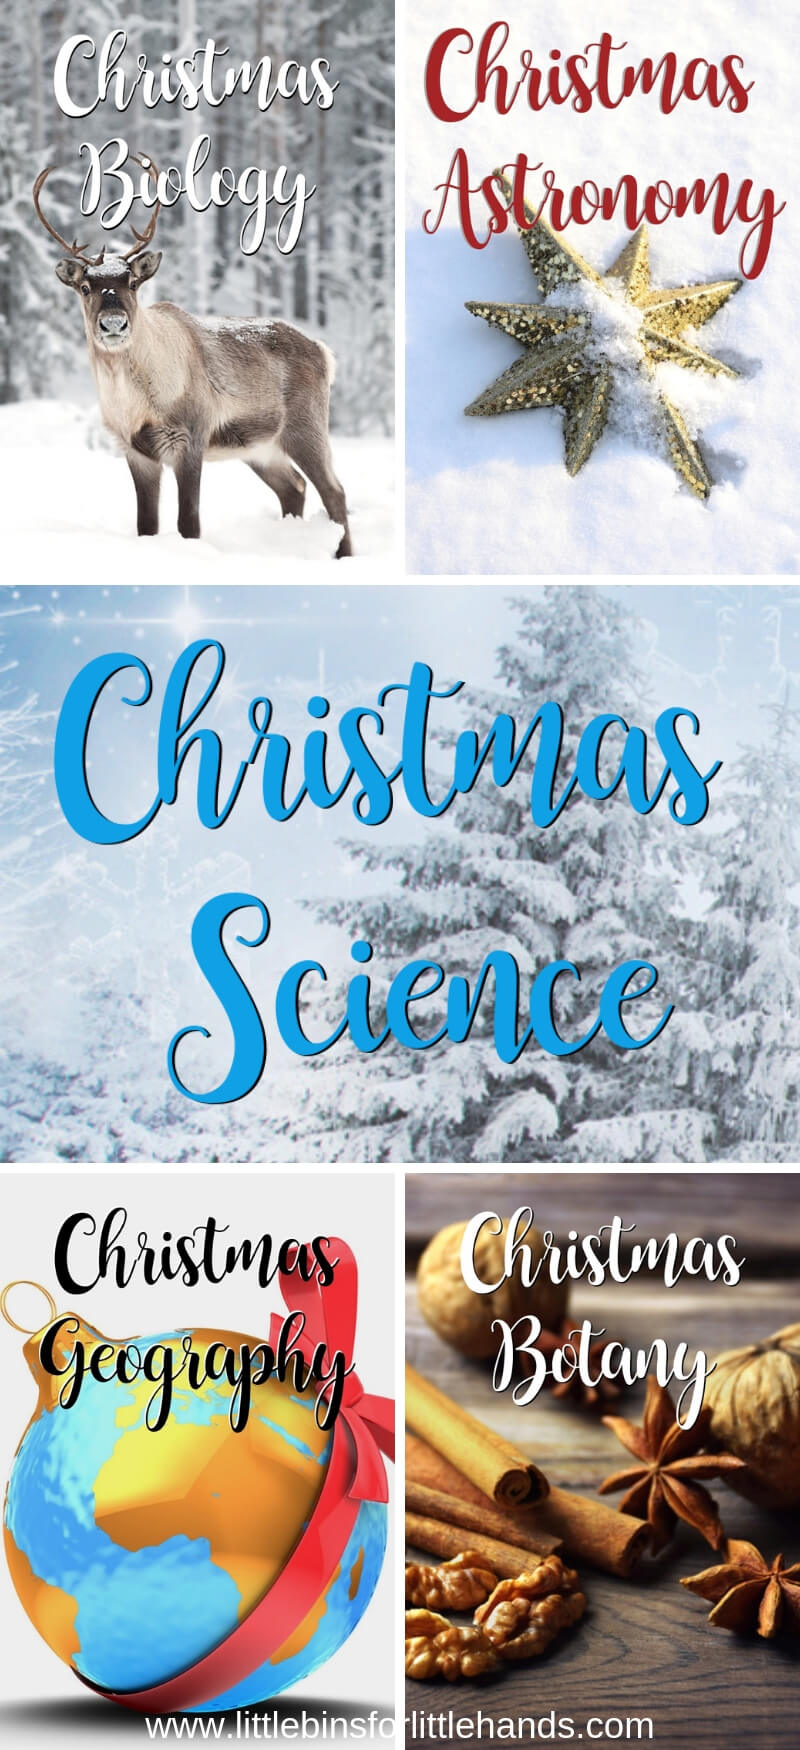 Facts About Christmas.Christmas Science Projects And Facts To Share With Kids